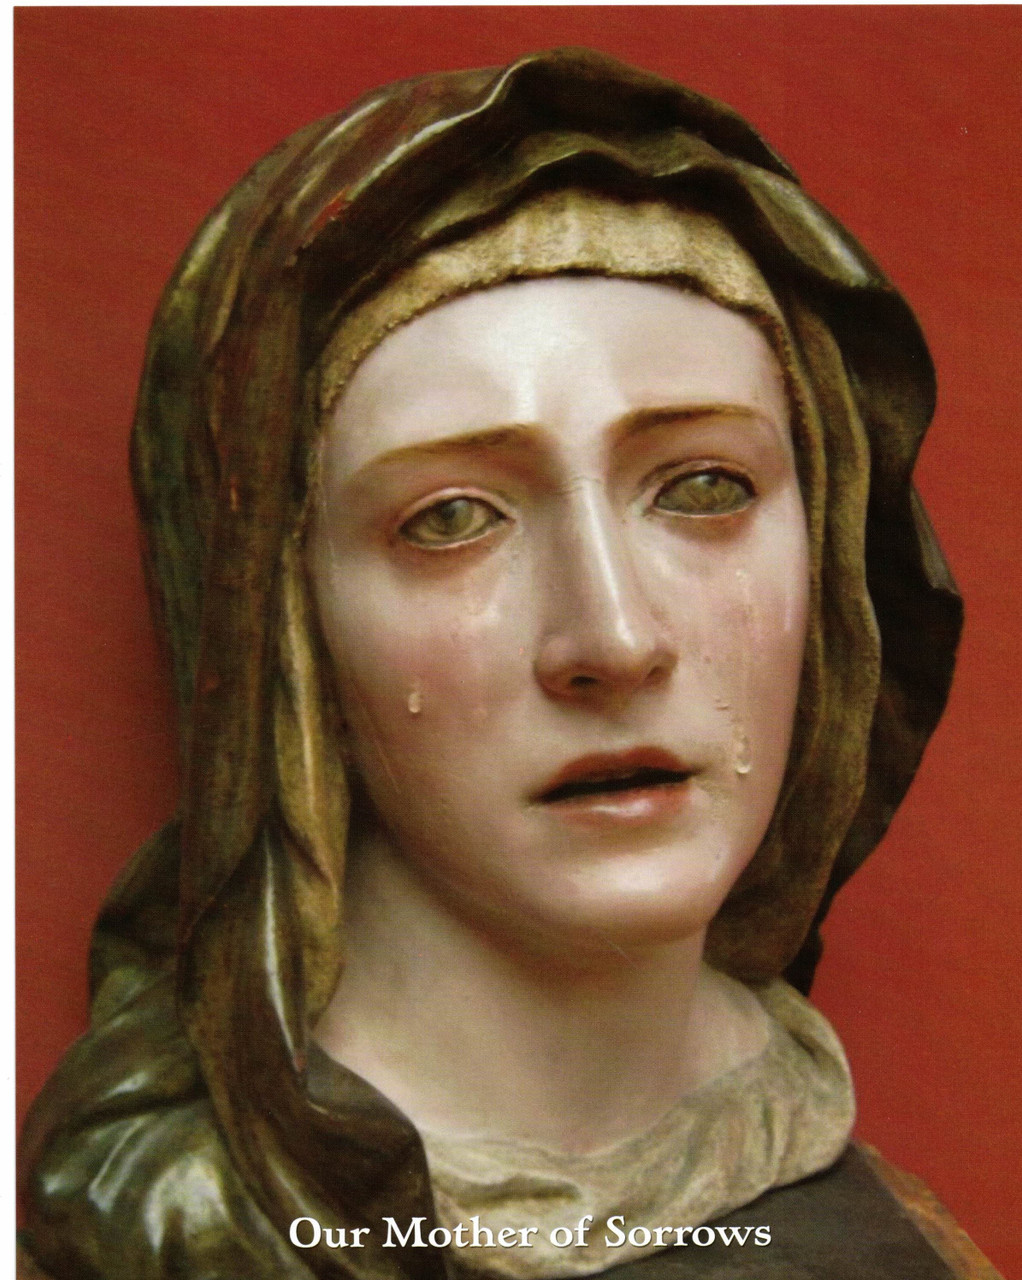 Our Lady (Mother) of Sorrows by Pedro Roldan